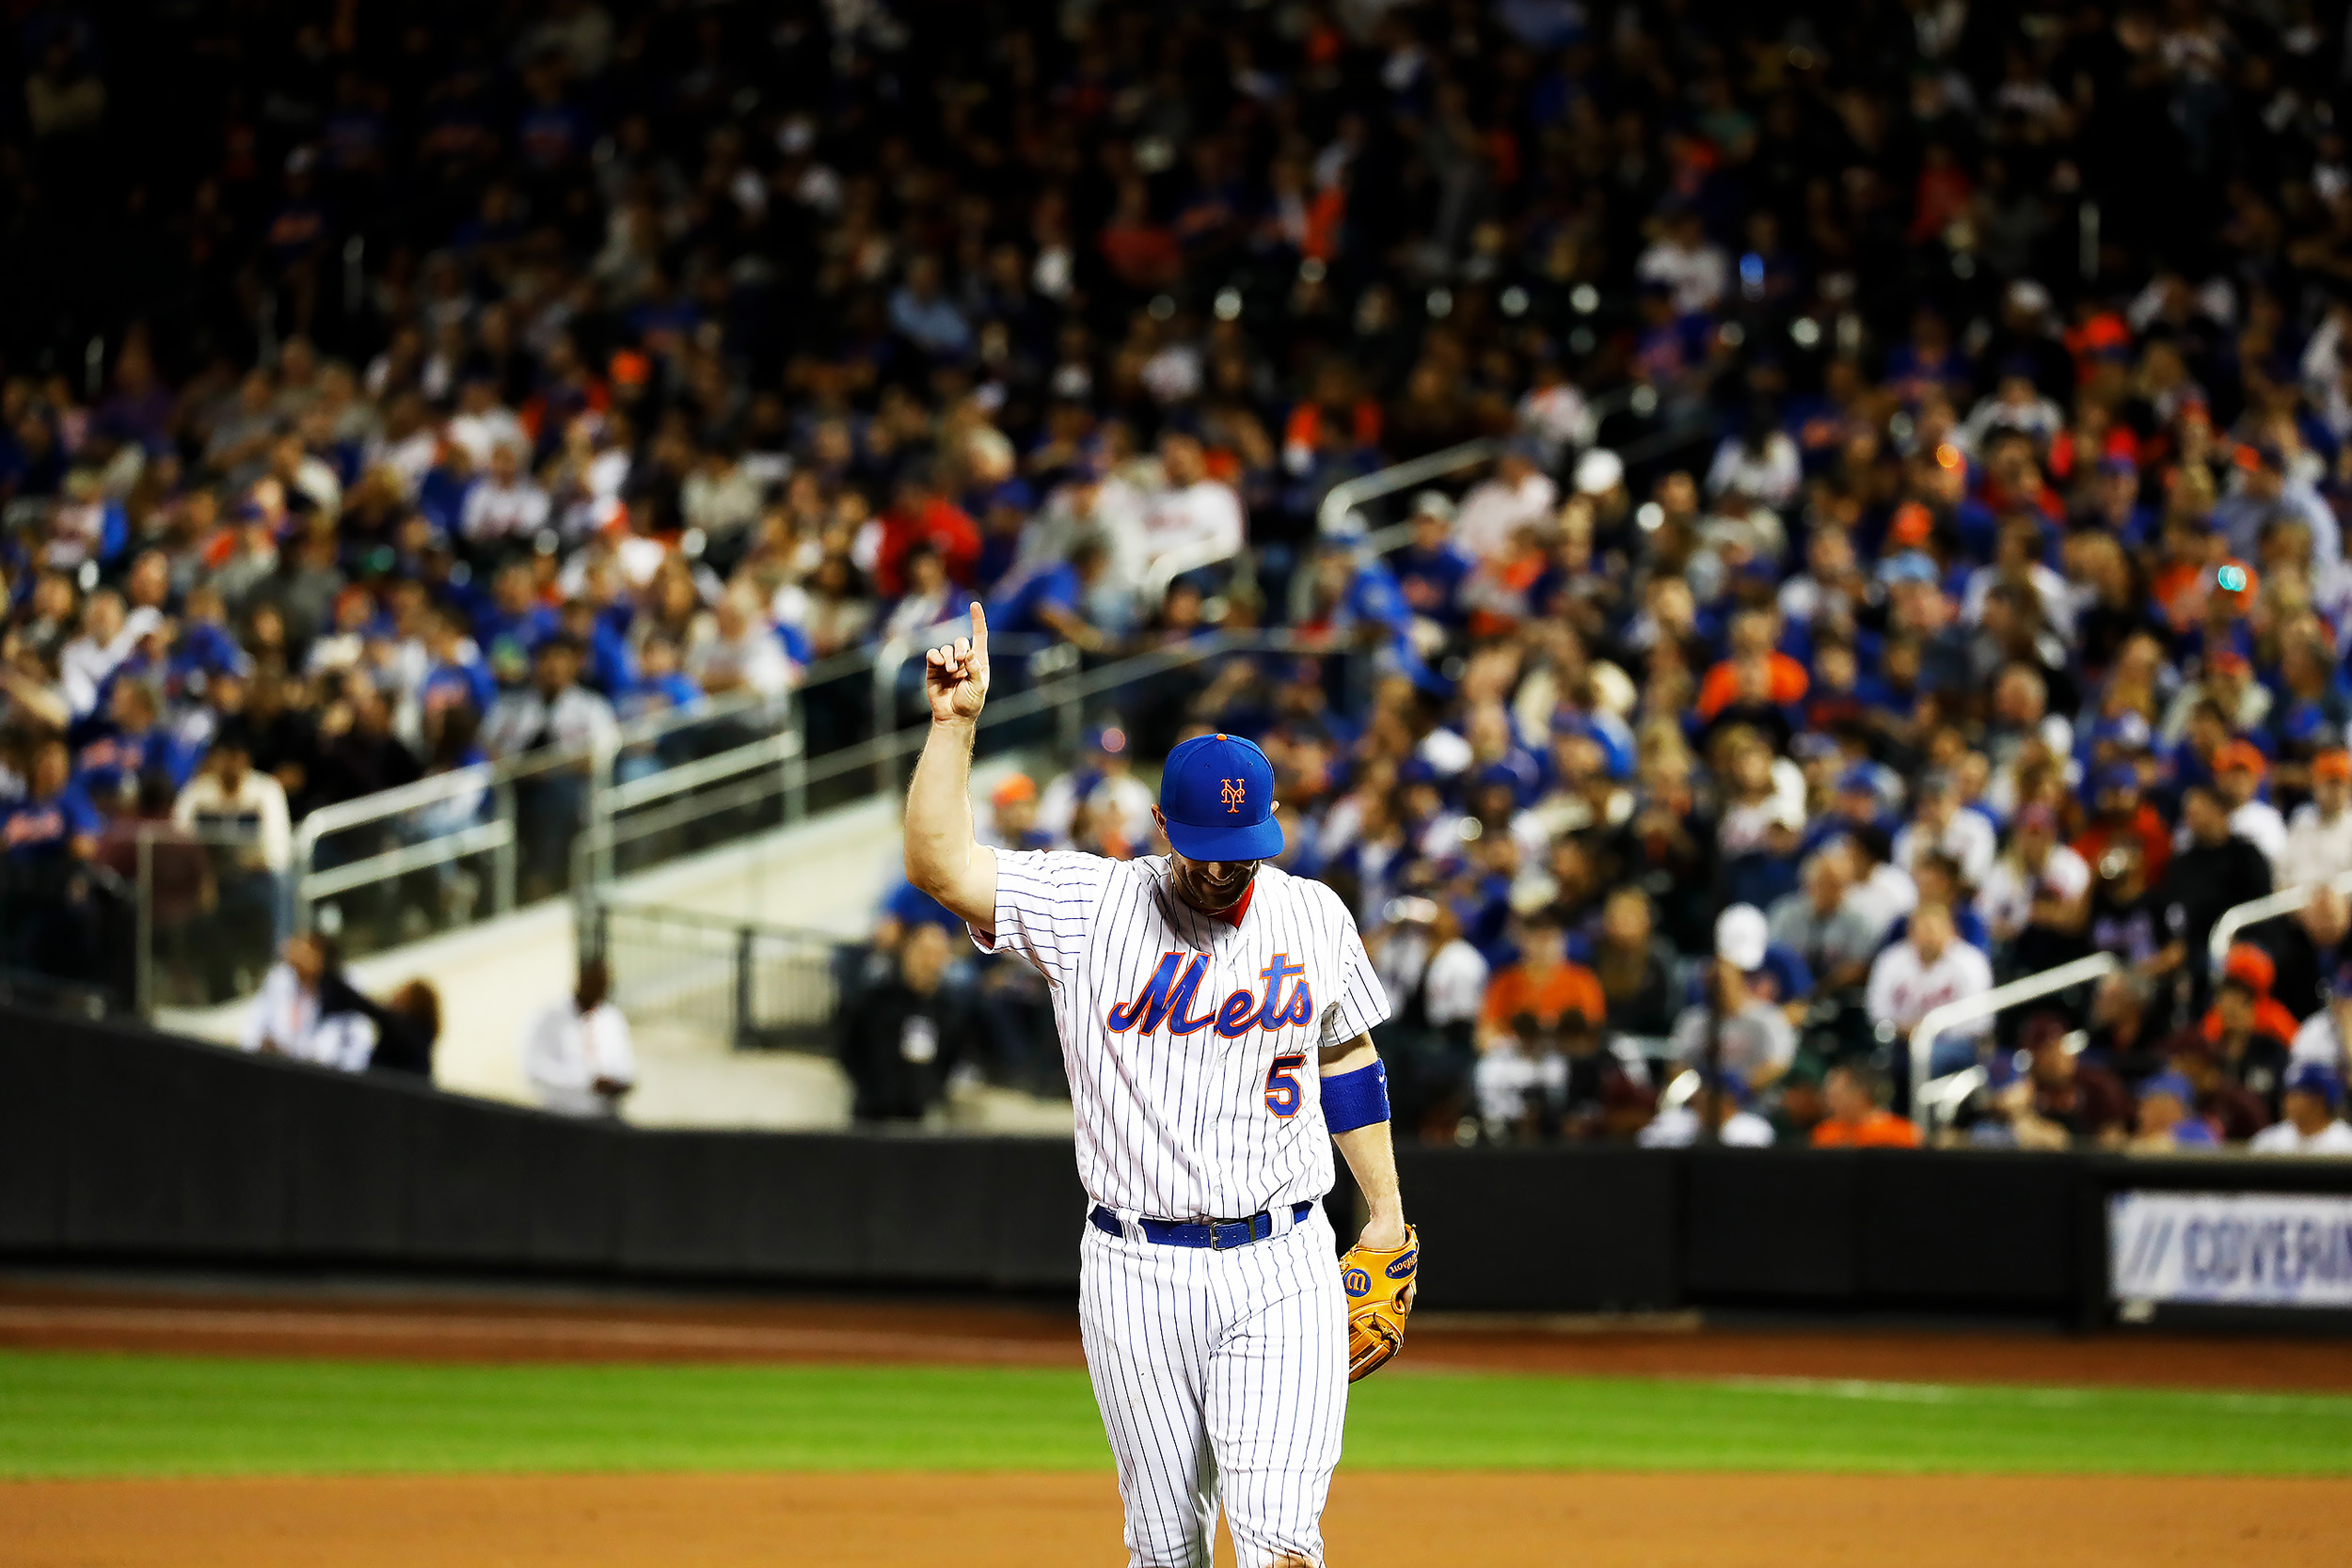 New York Mets David Wright (5) points to the sky during his last game against the Miami Marlins at Citi Field in Flushing, NY.